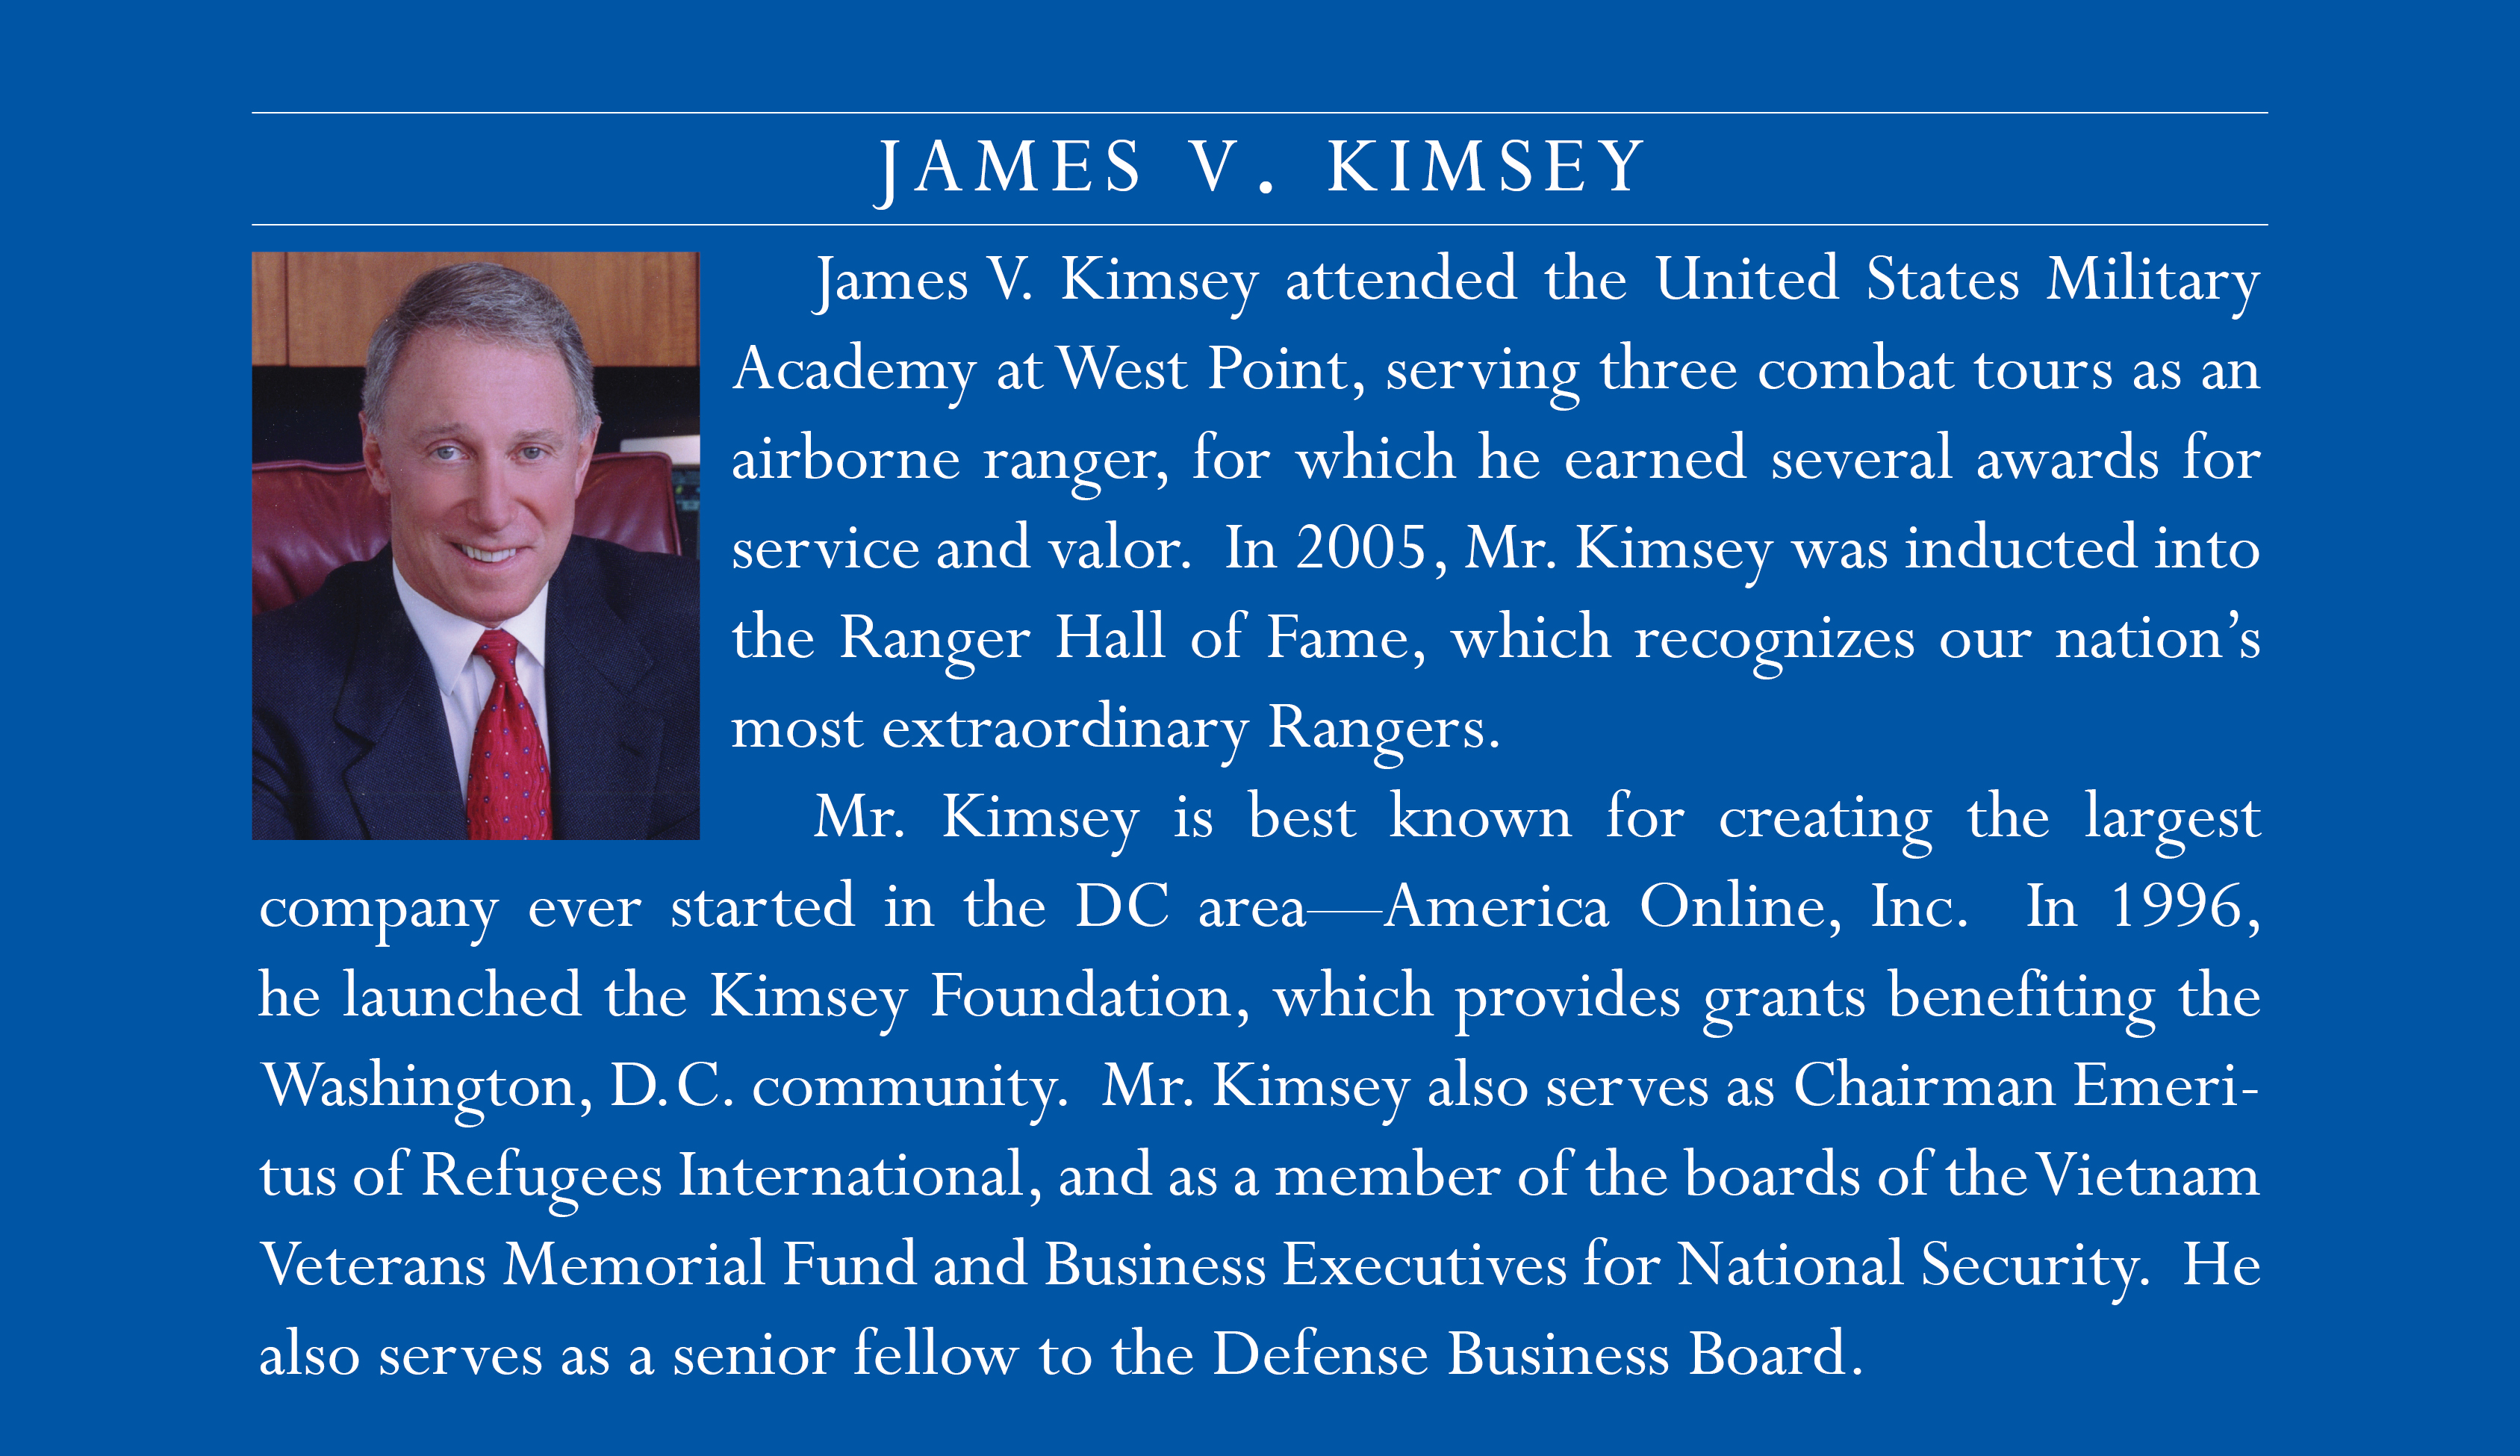 Kimsey new bio